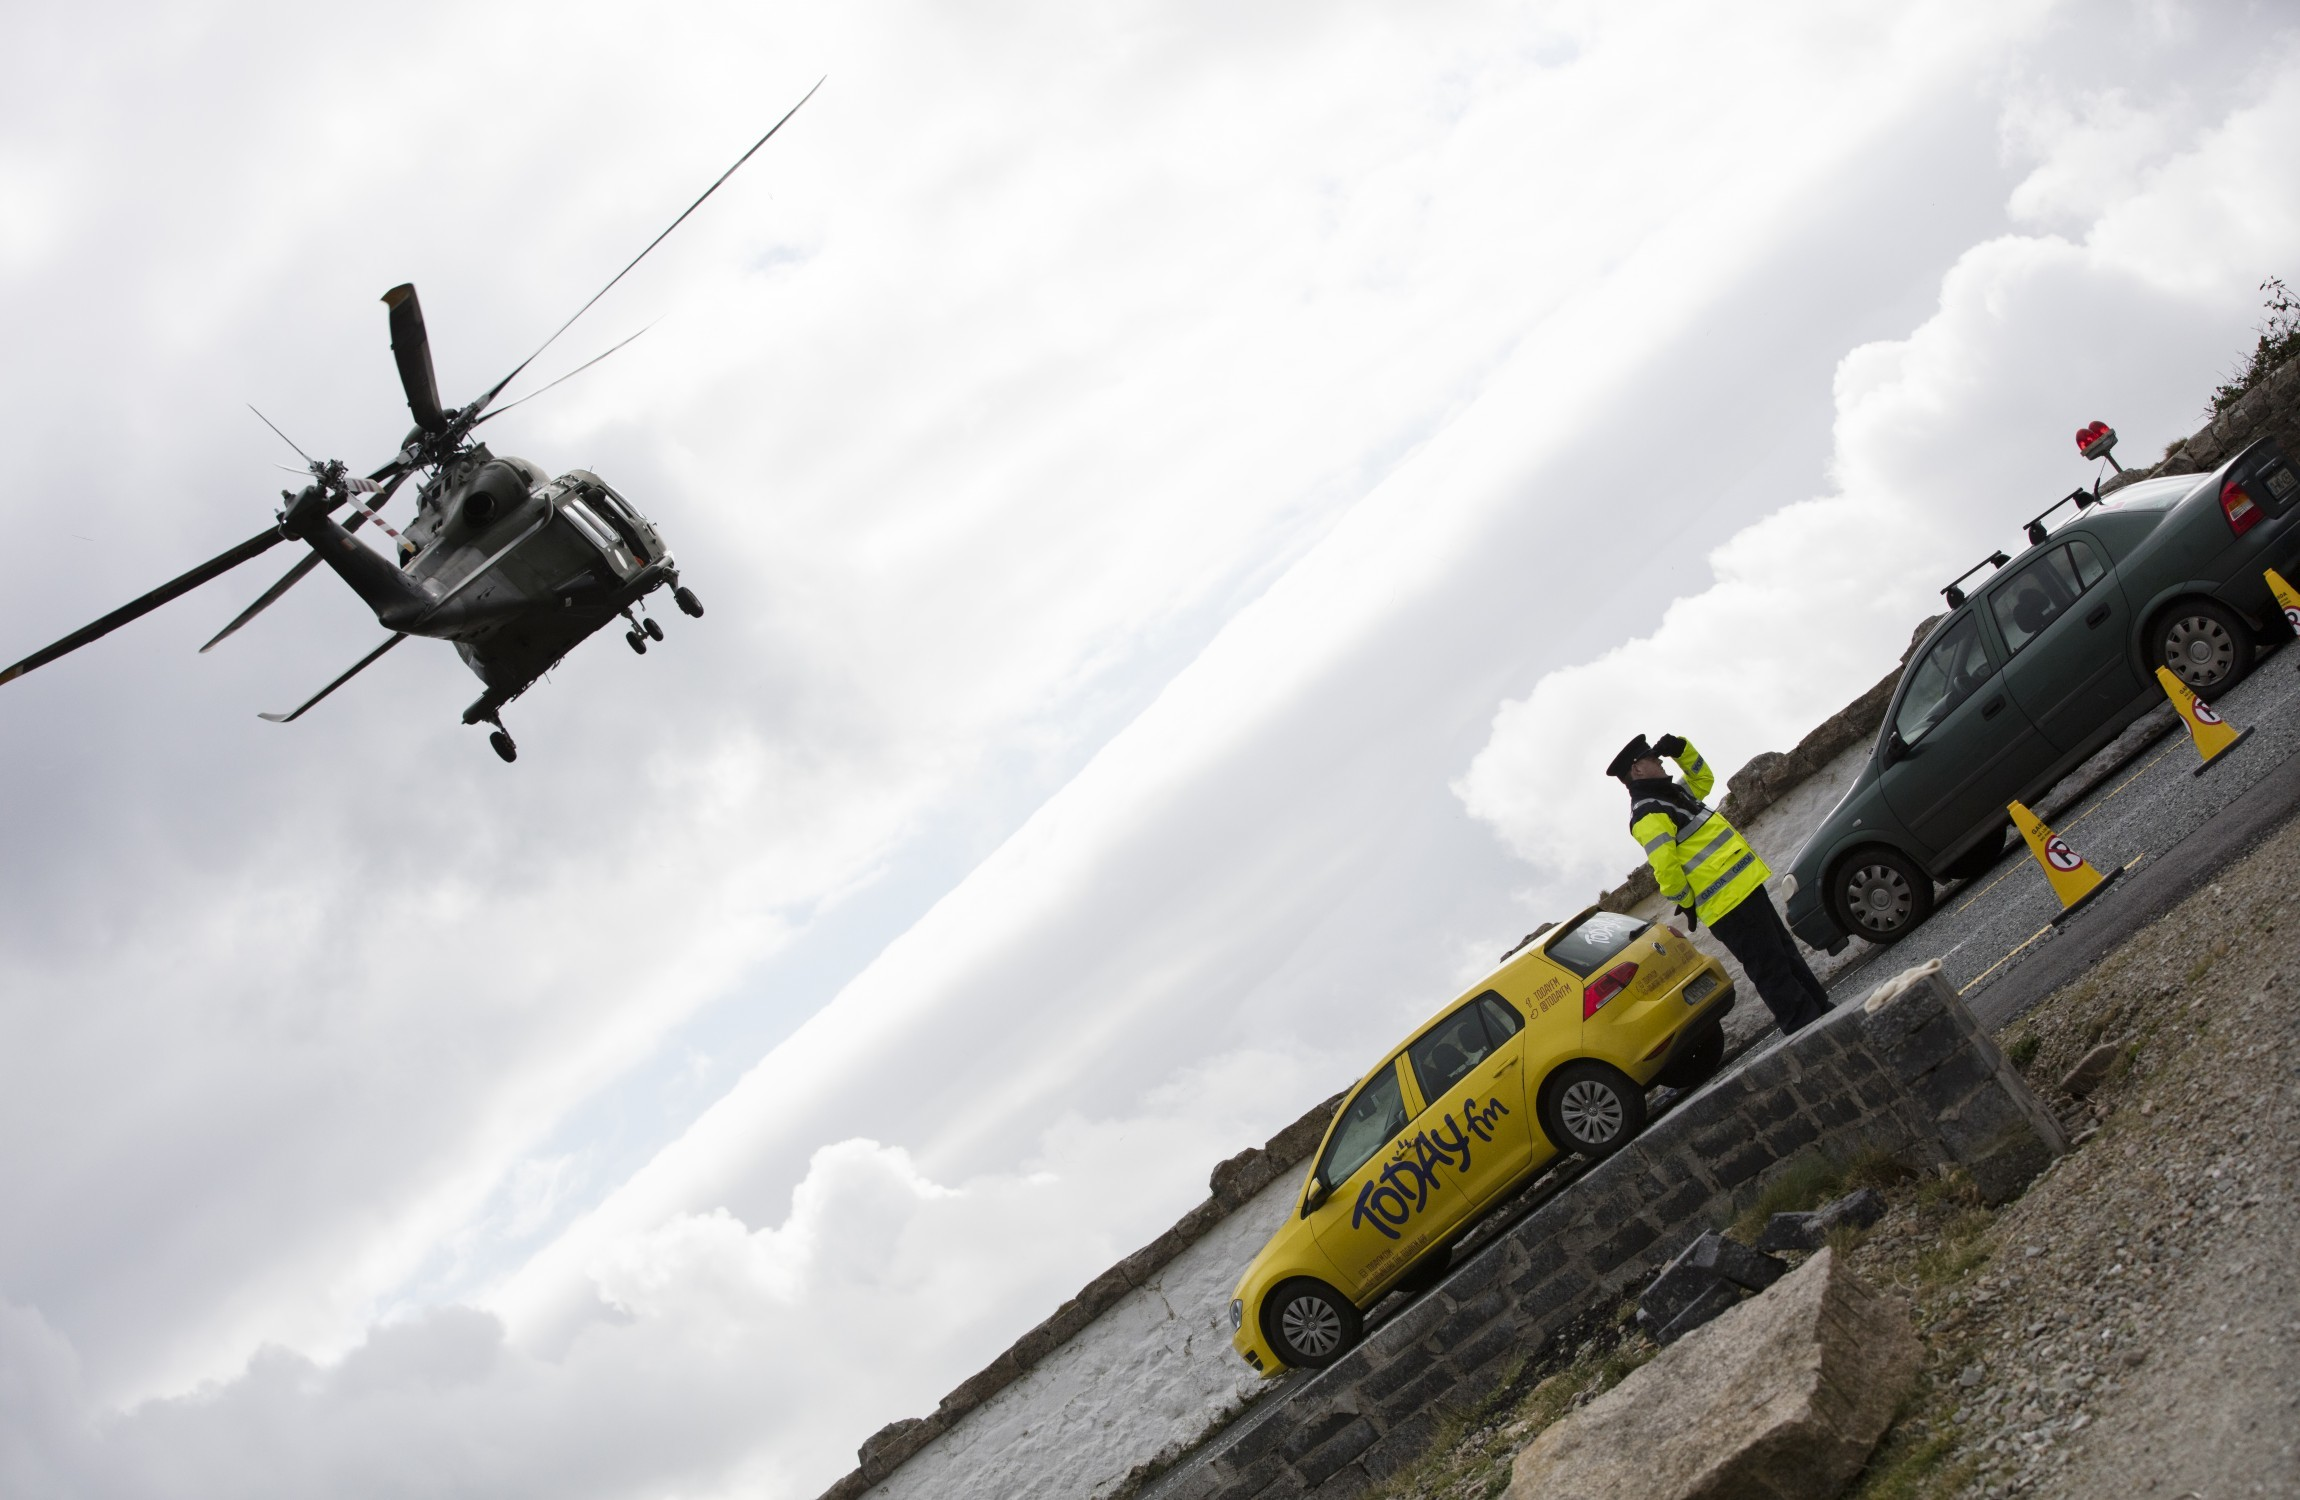 Initial Rescue 116 report recommends review of route guides used by helicopters